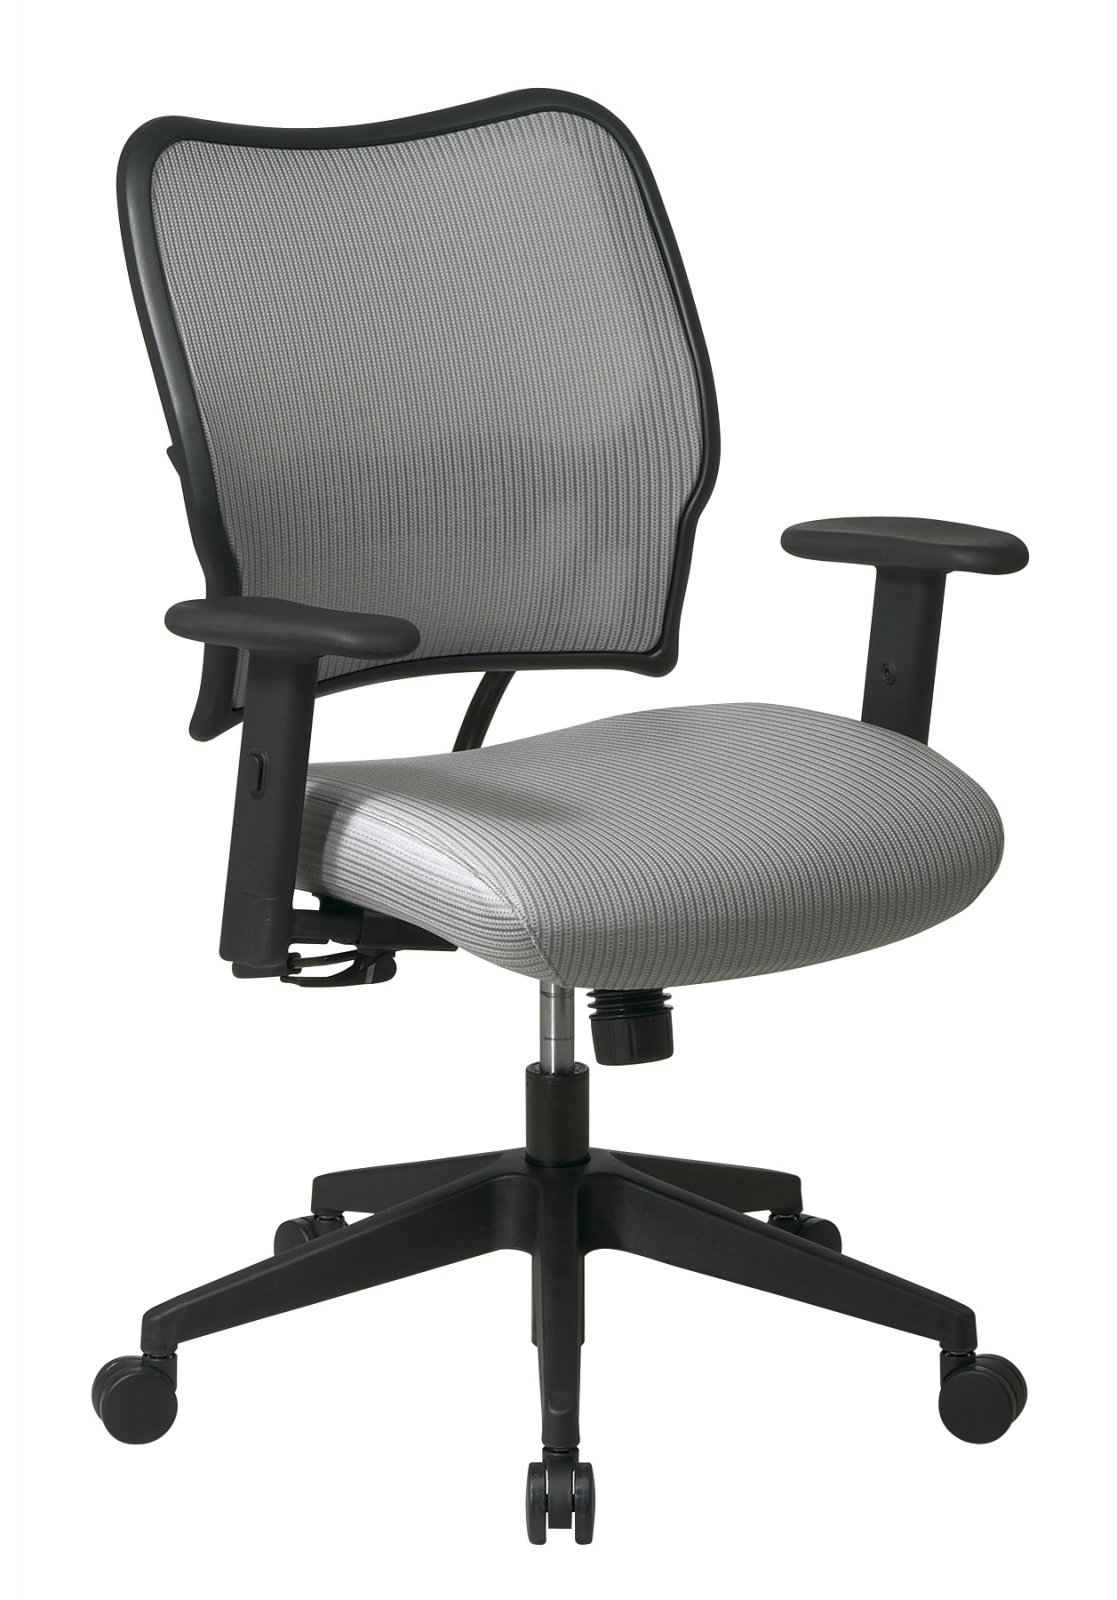 Office Depot Desk Chairs Office Depot Office Furniture